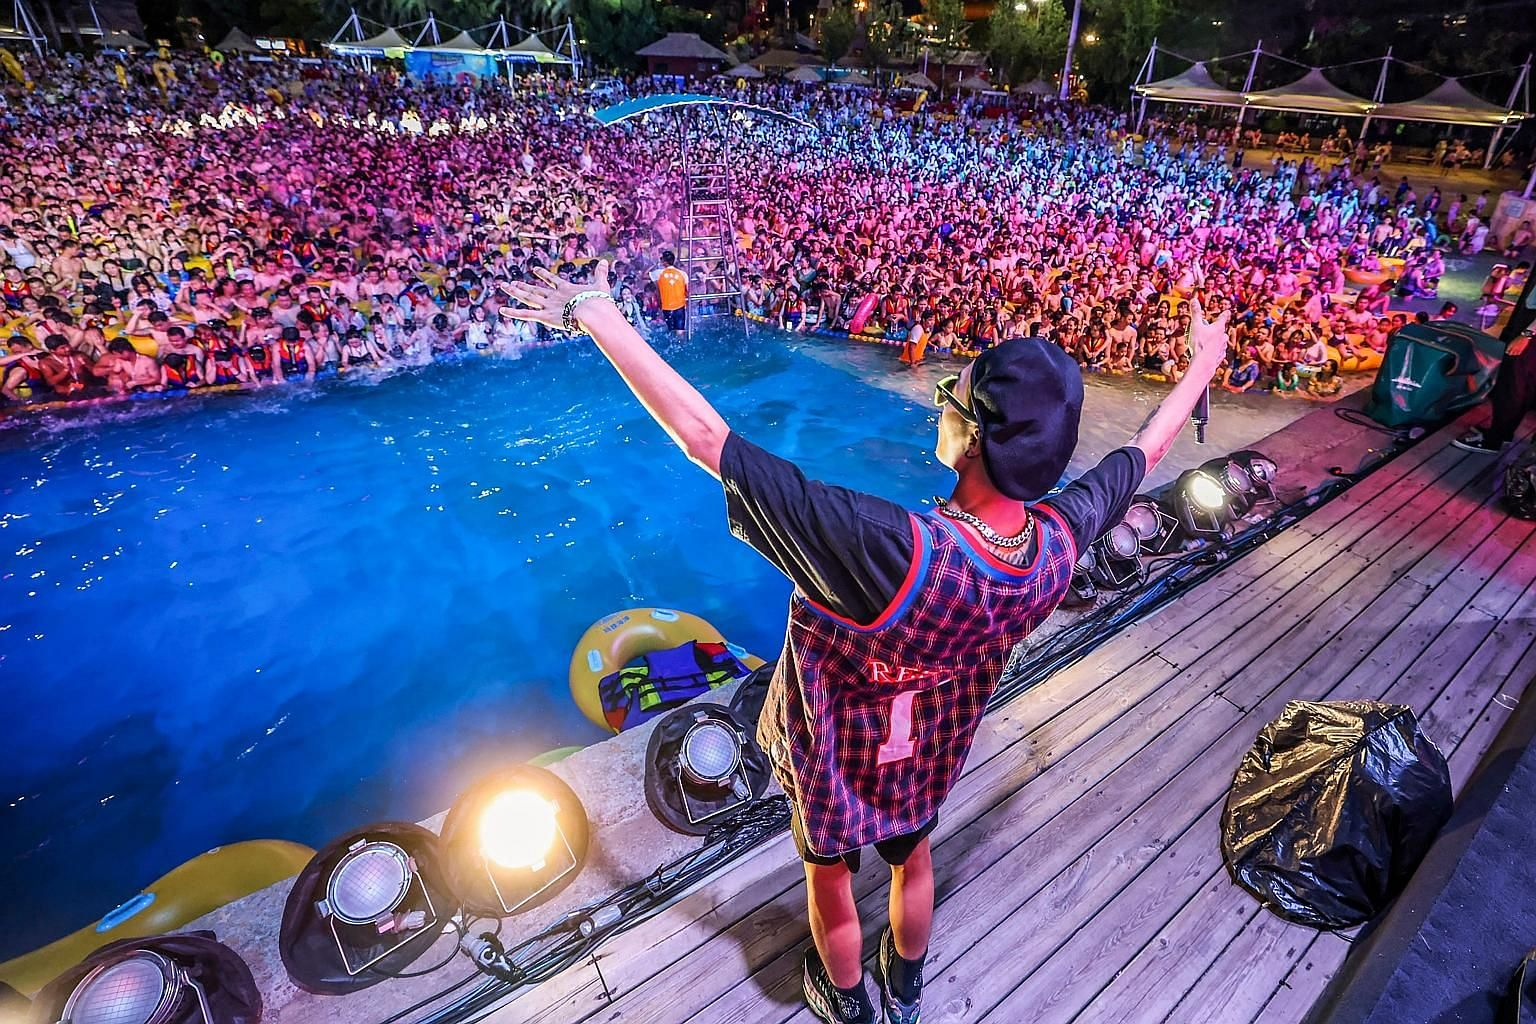 Thousands of partygoers watching a show as they cool off at a water park in Wuhan last weekend. No one seemed to be wearing face masks. Since mid-May, there have been no new domestically transmitted cases officially reported in Hubei province, where